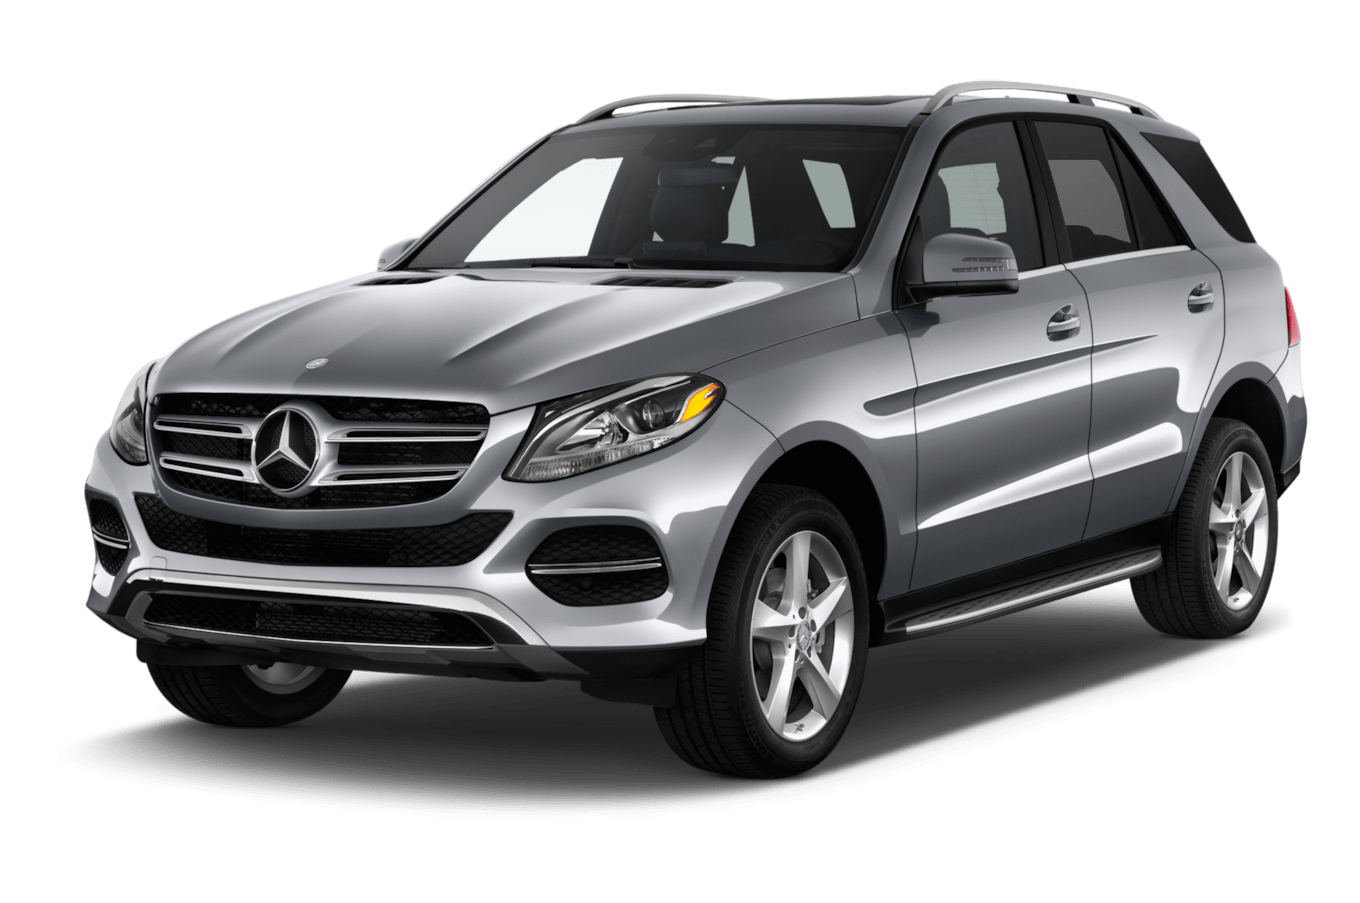 Mercedes Suv 2016 2016 Mercedes Benz Gle Class Reviews And Rating Motor Trend